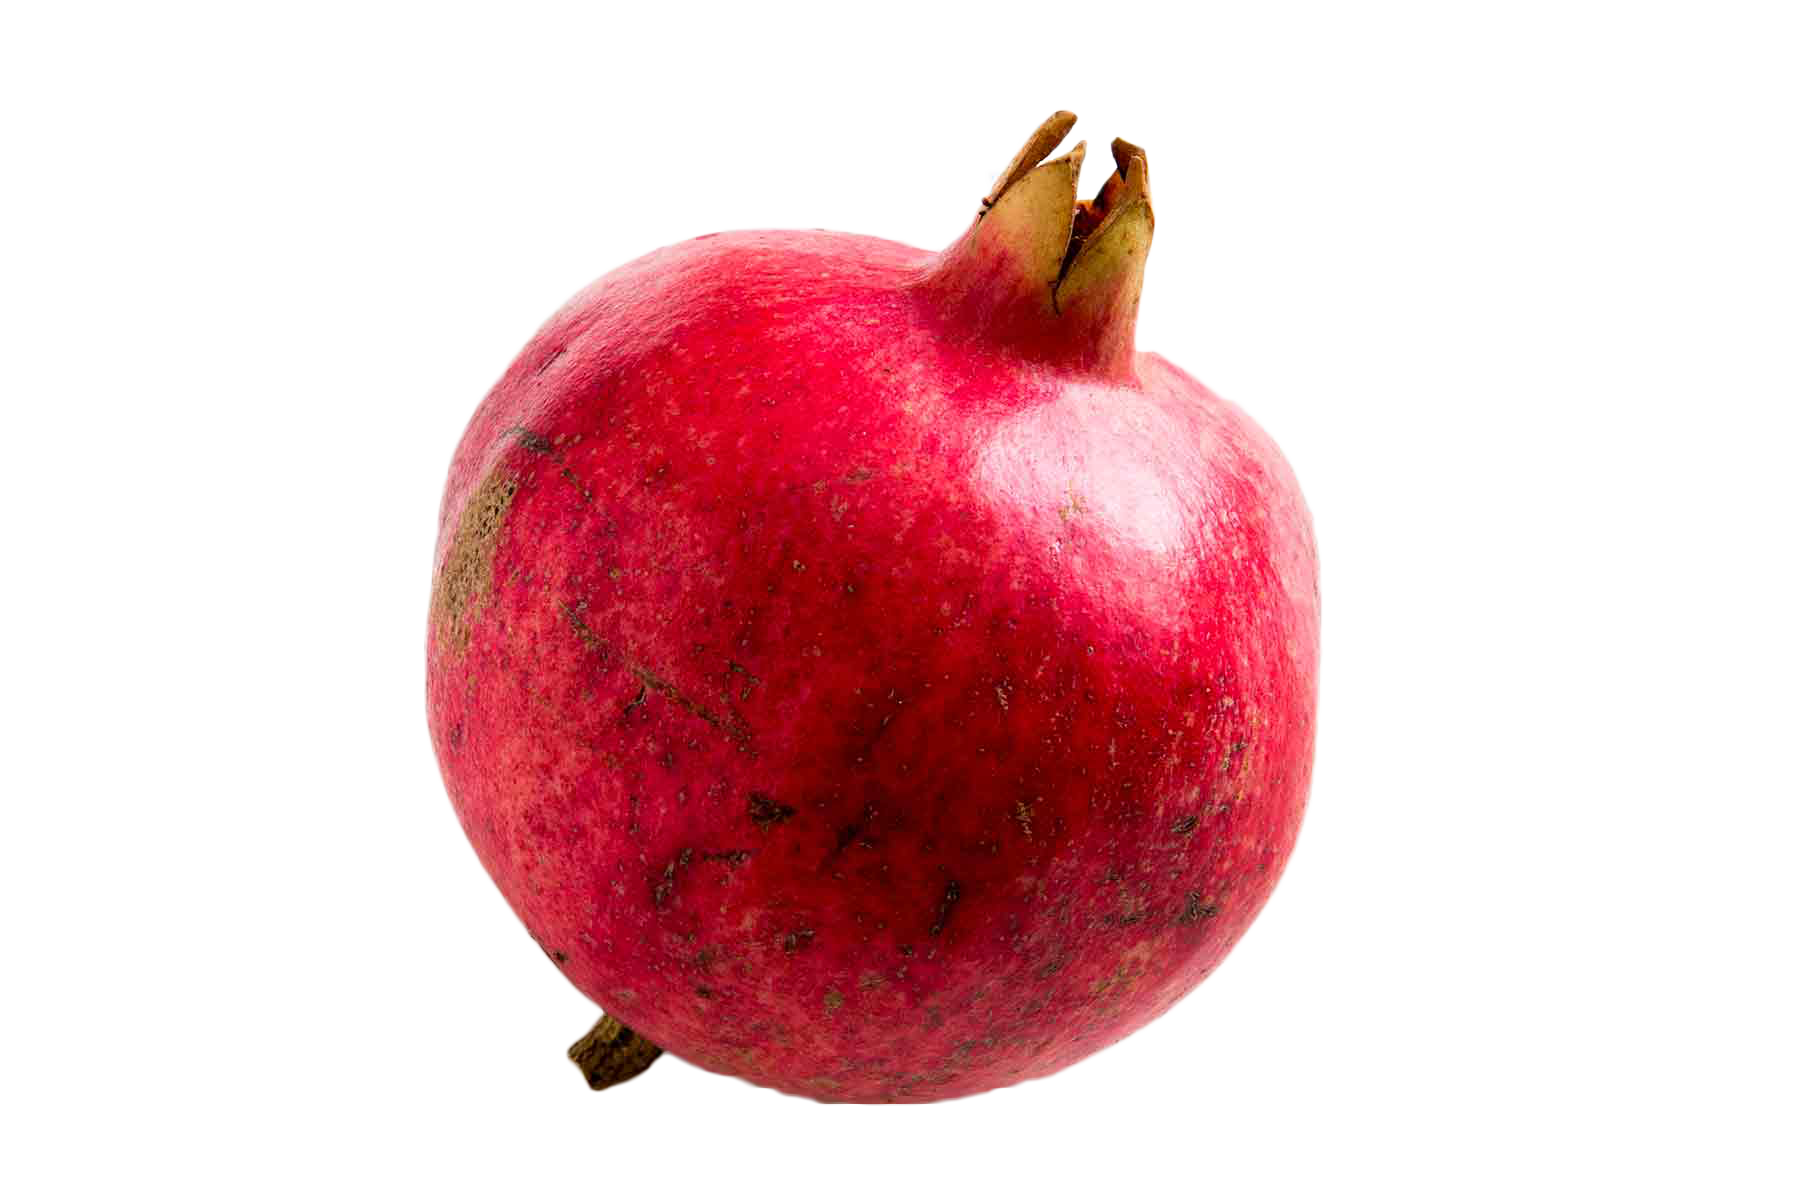 Pomegranate fruit png. Image purepng free transparent